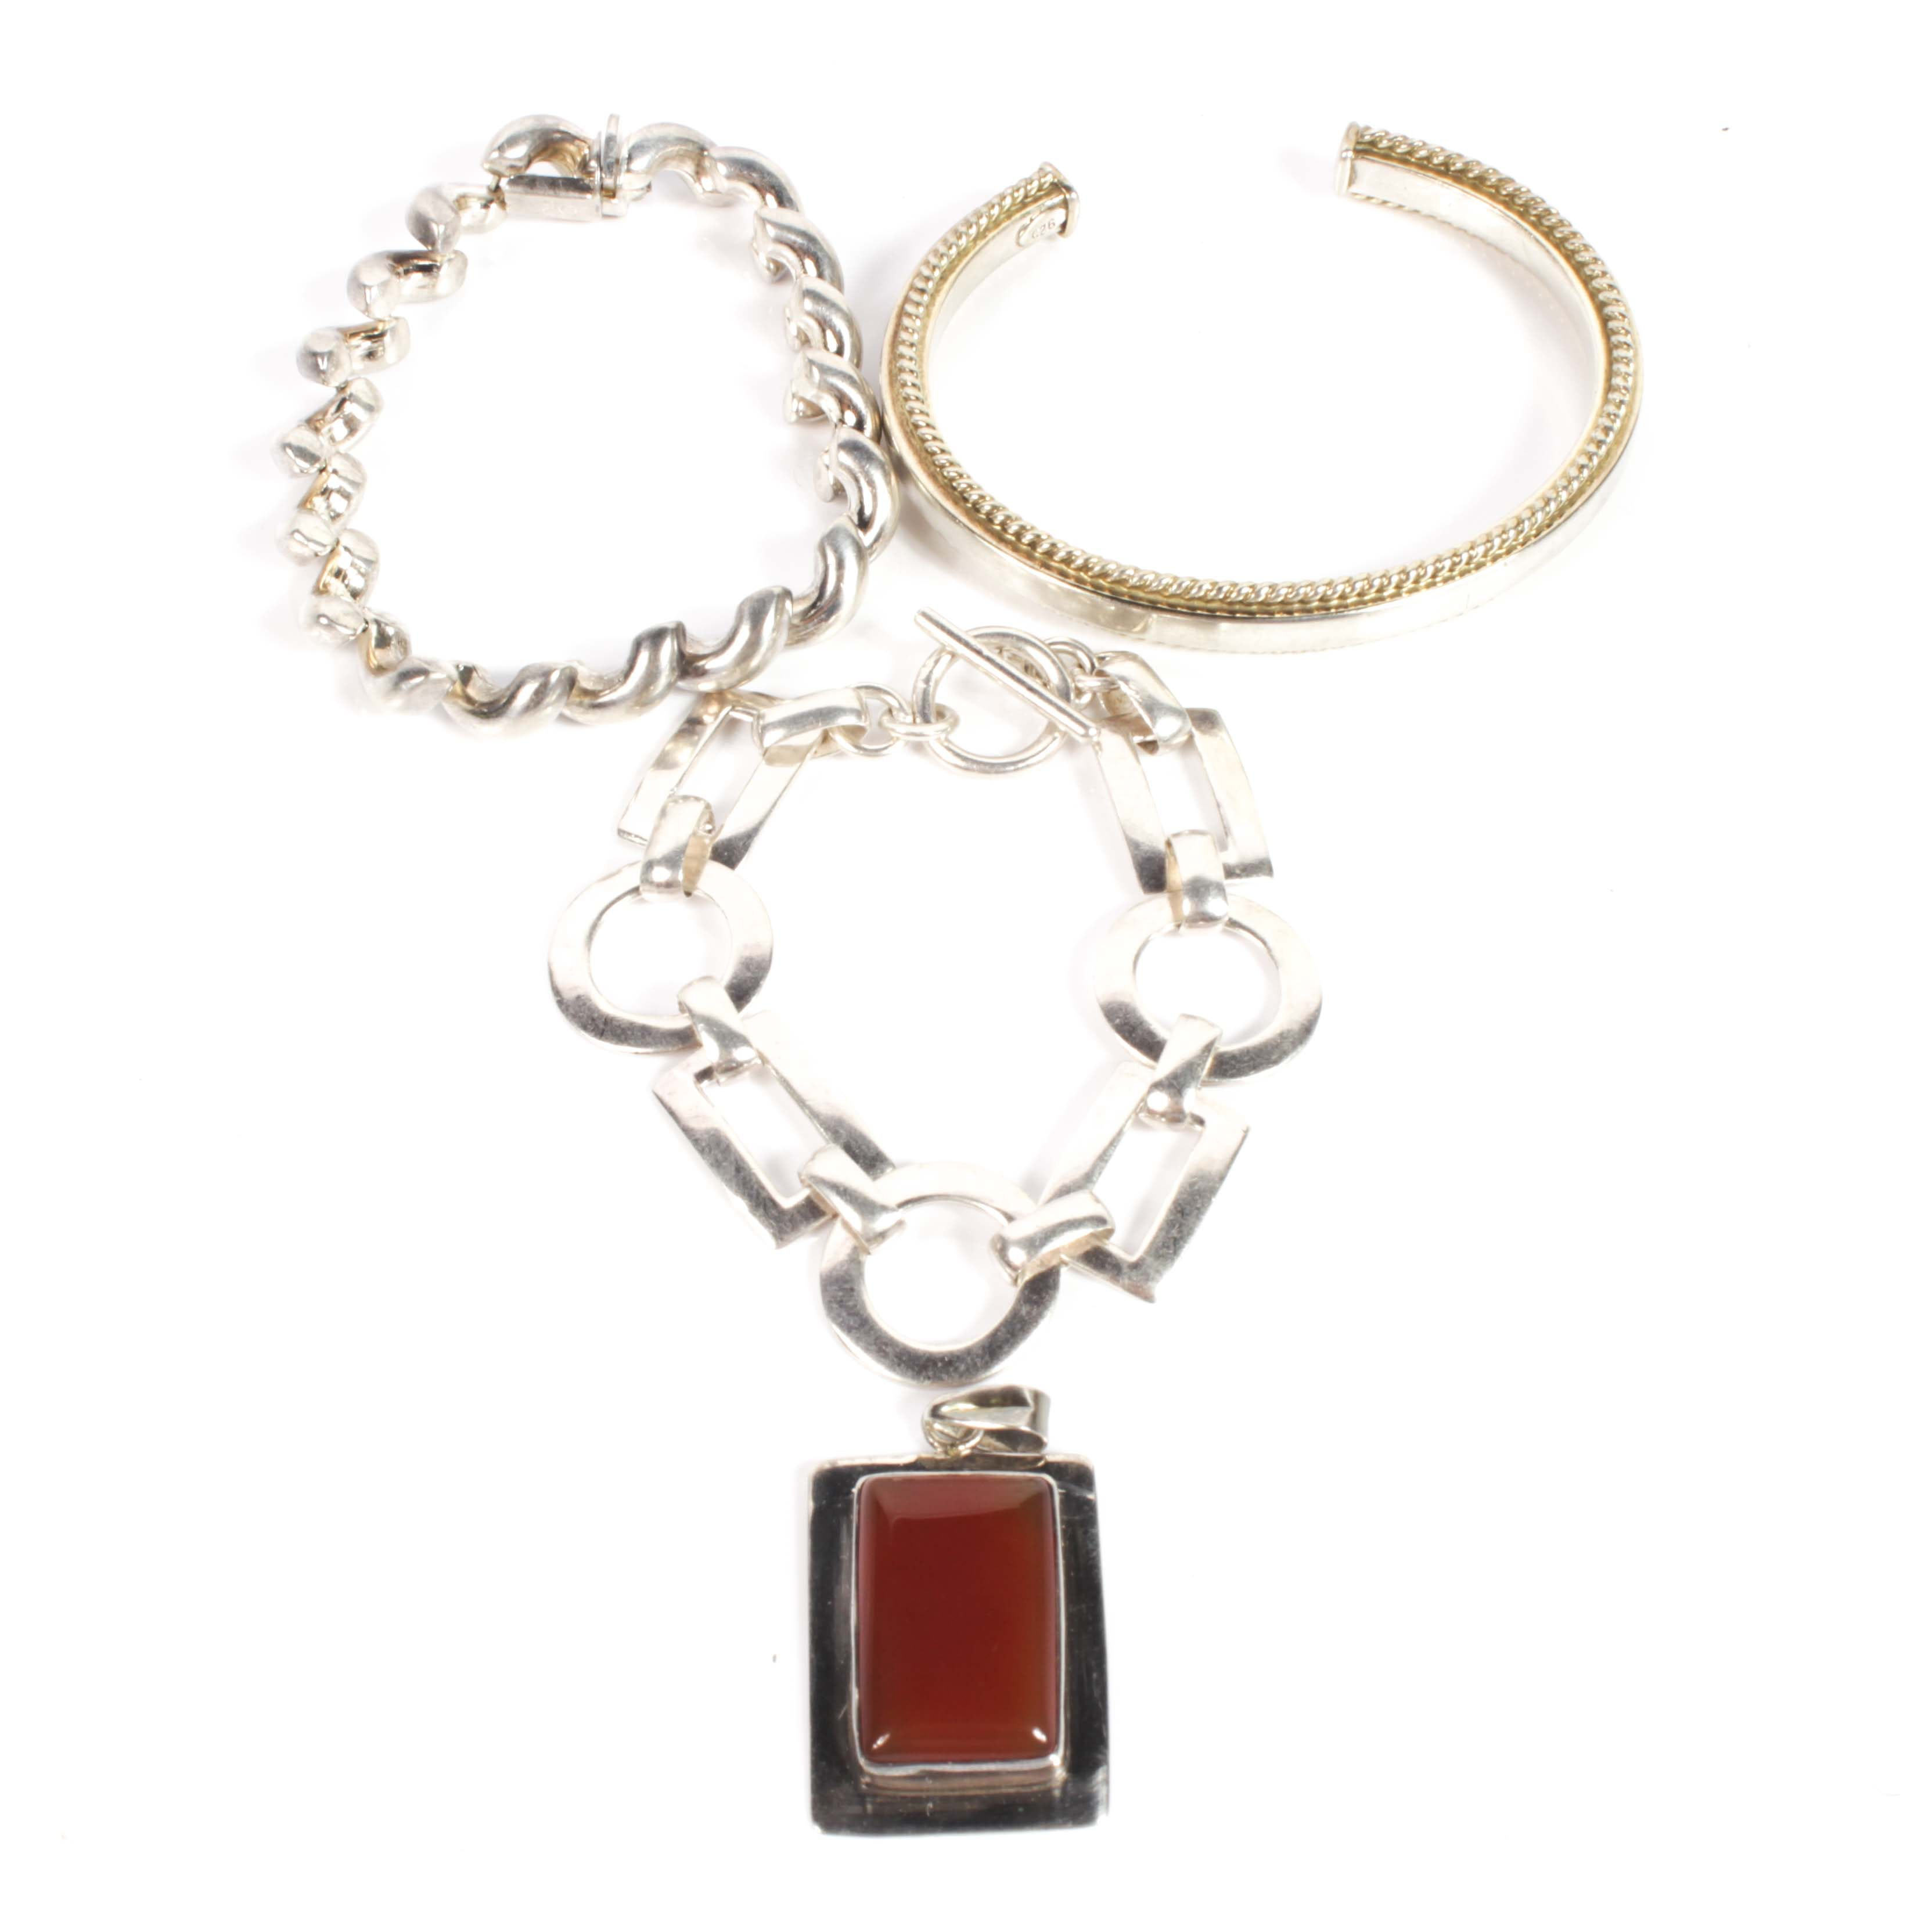 Sterling Silver and Carnelian Pendant and Three Sterling Silver Bracelets